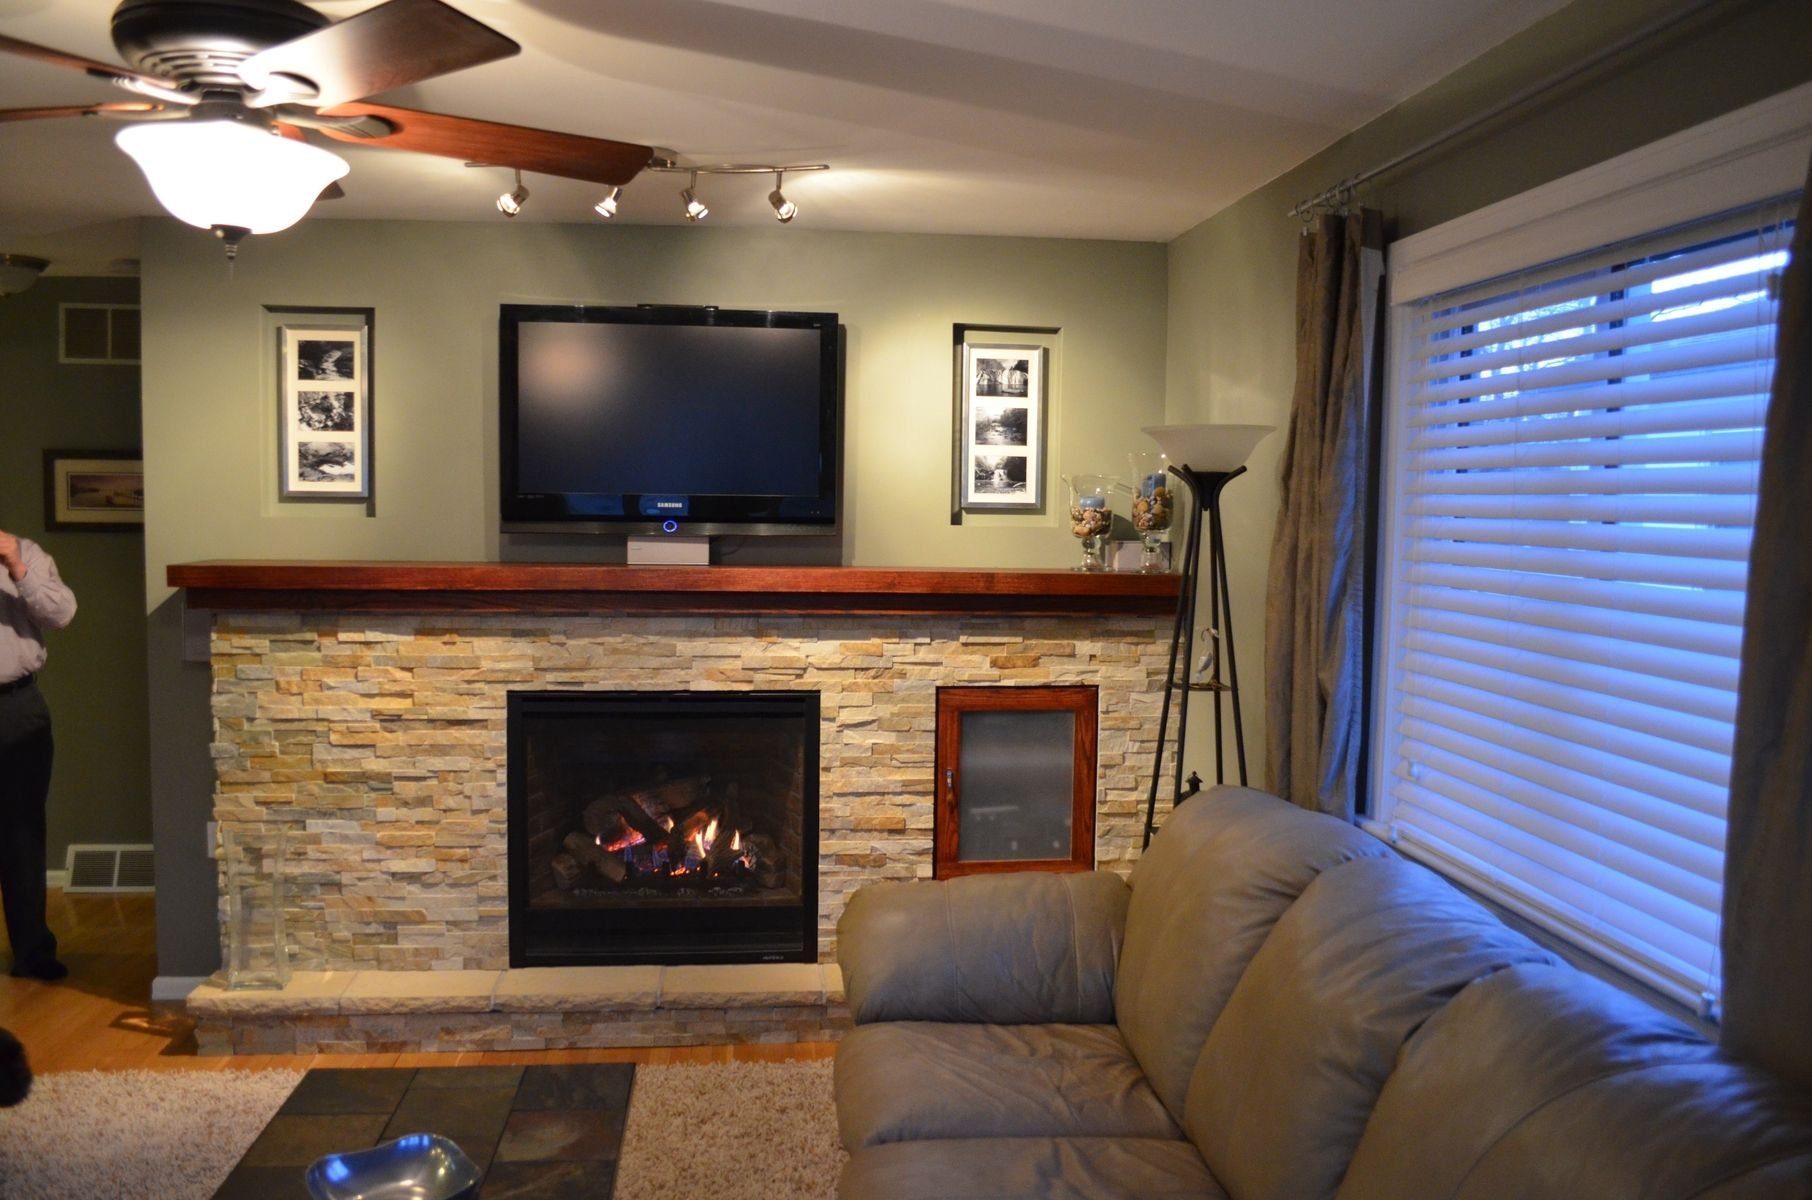 day cabinet days package infrared media is vintage cherry accessories and the electric center lynwood mantel ships tv console in products fireplace delivered same consoles